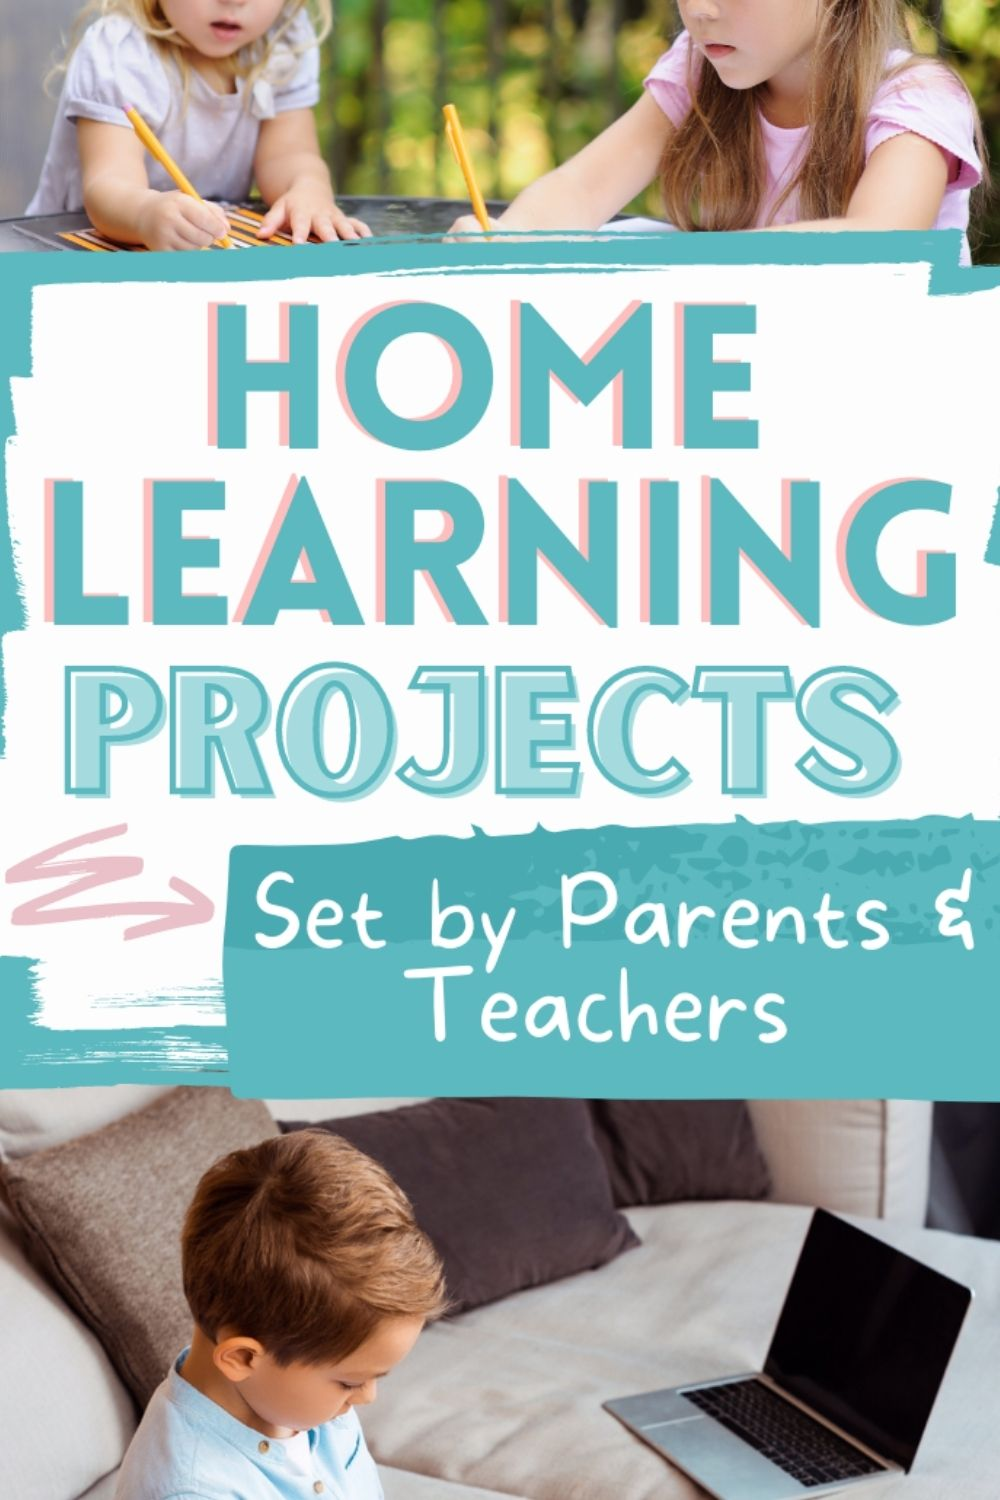 Boy with laptop and two girls writing. Text reads: Home learning projects set by parents and teachers